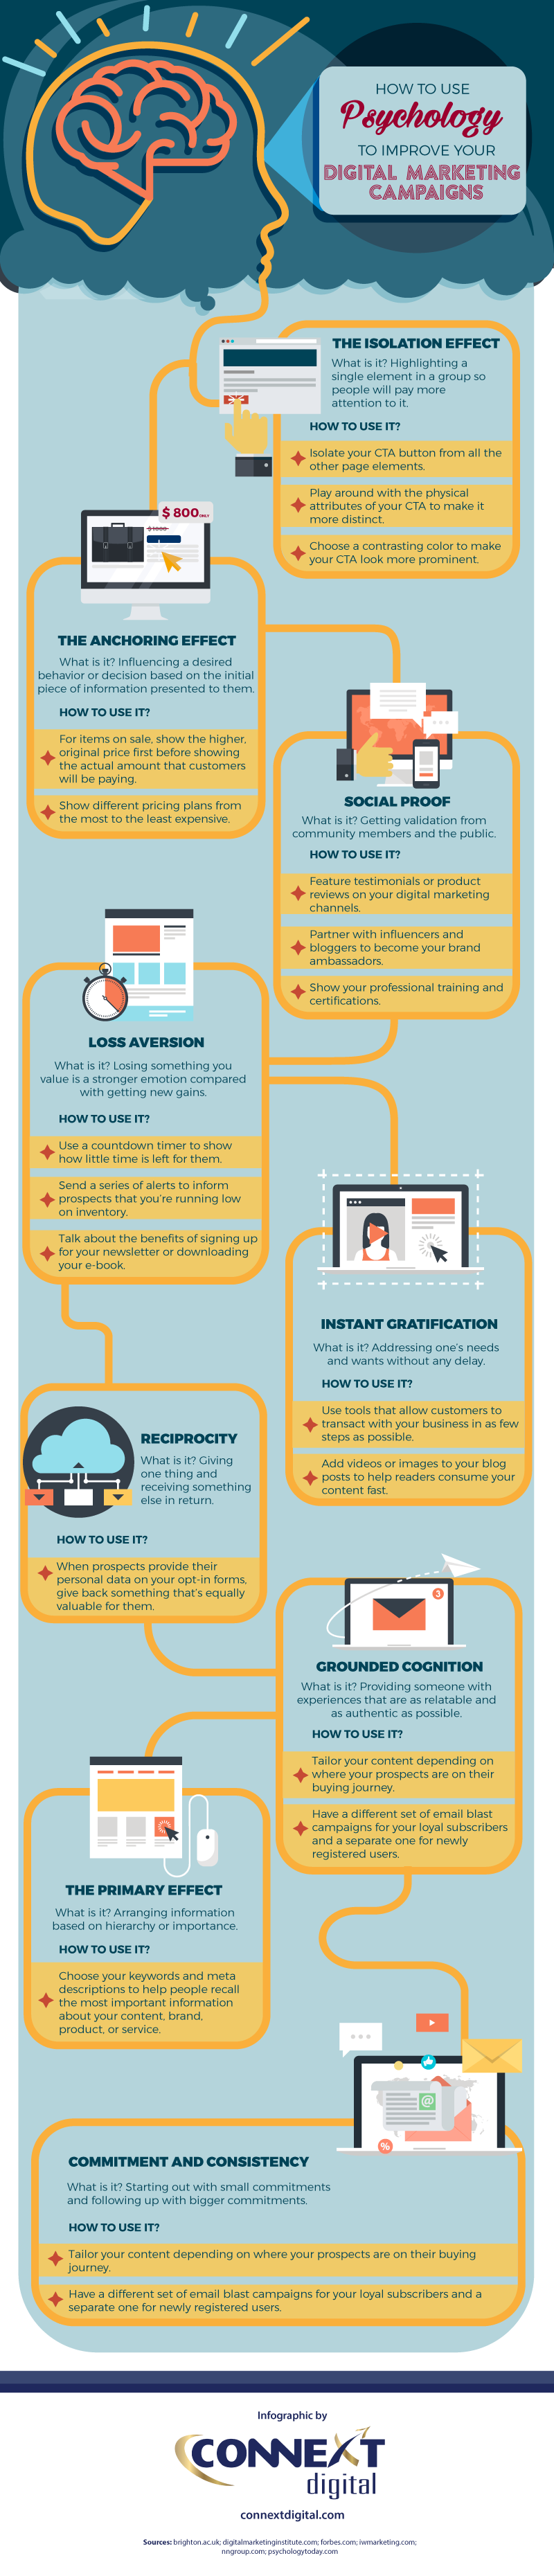 How to Use Psychology to Improve Your Digital Marketing Campaign - Infographic